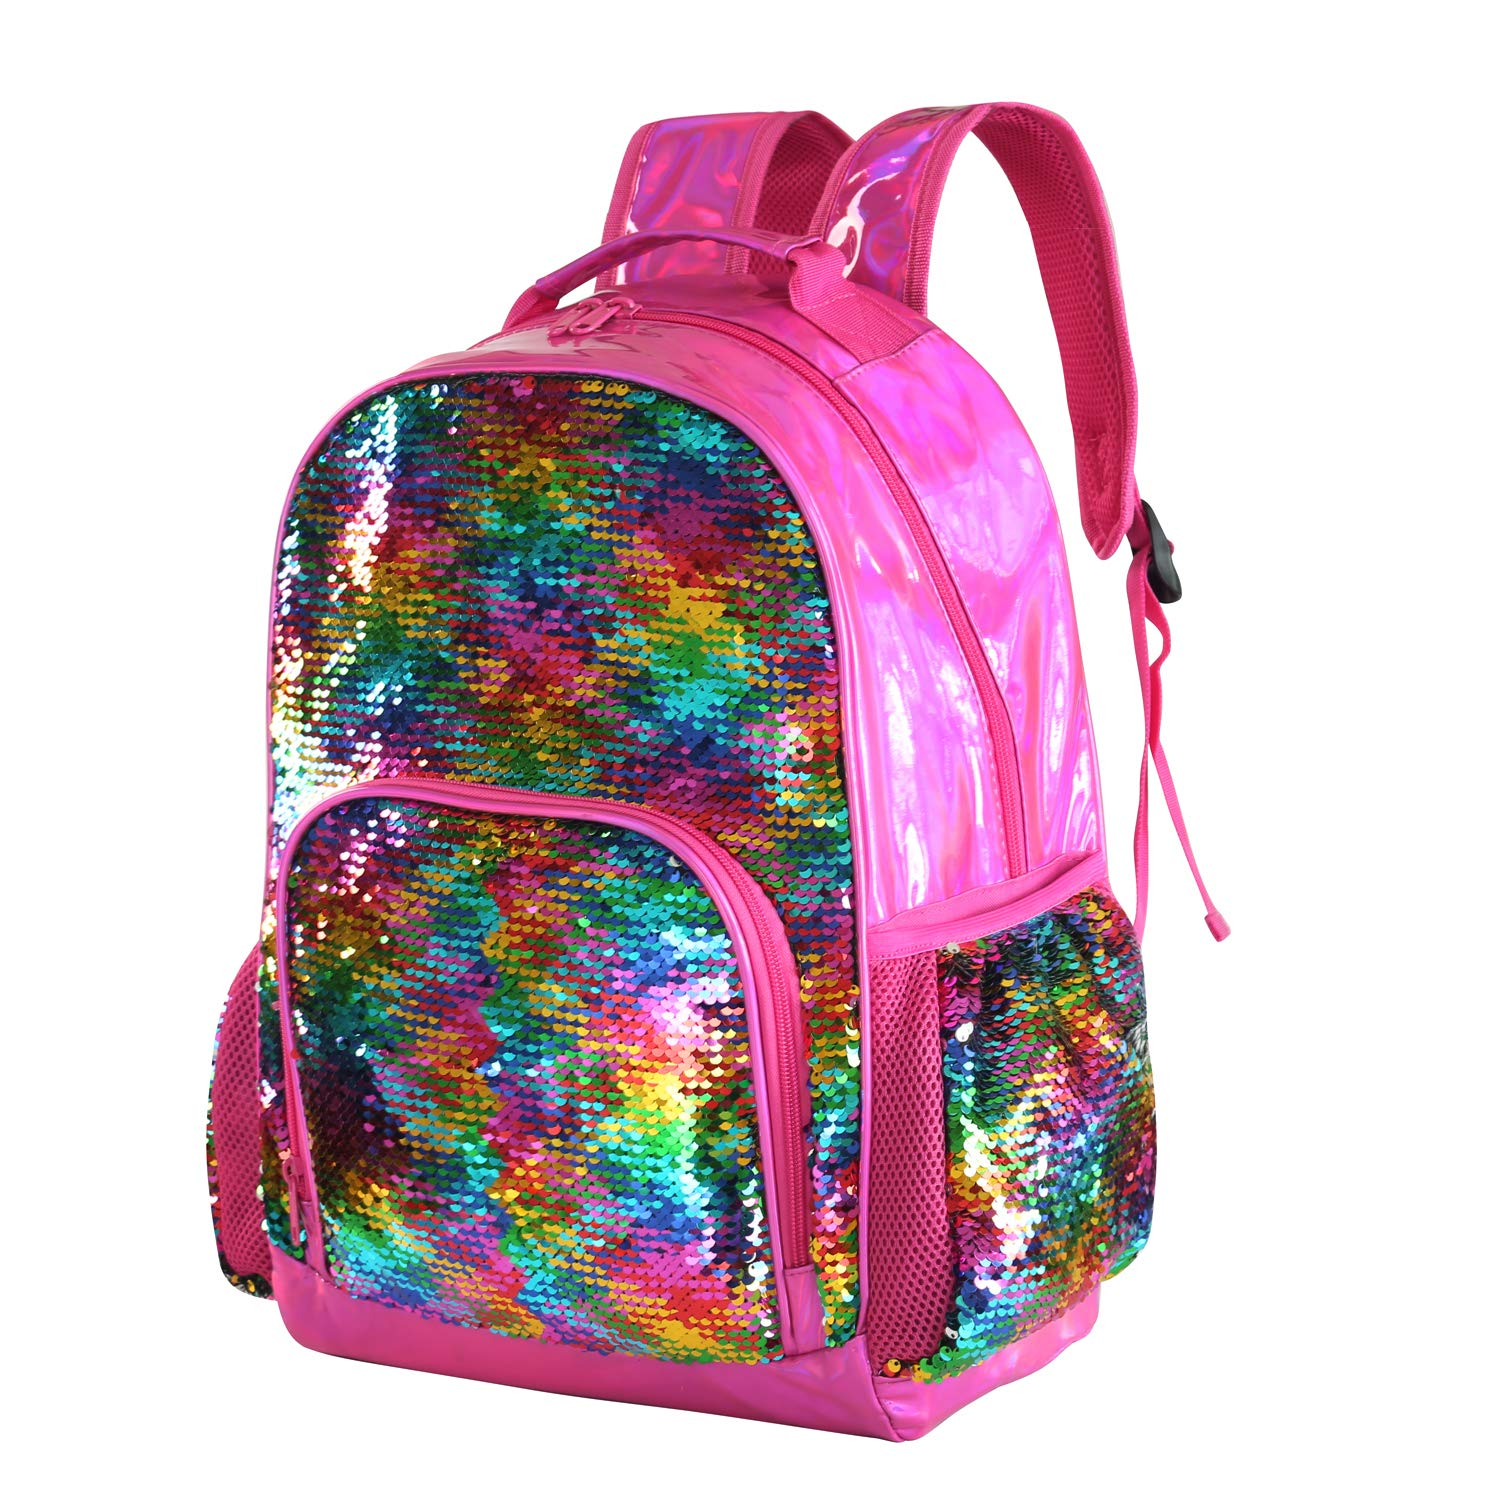 3e1c3c7bca4 Holographic Sequin School Backpack Bookbag for Girls Kids Casual Bling  Magic Mermaid Book Bag Back Pack